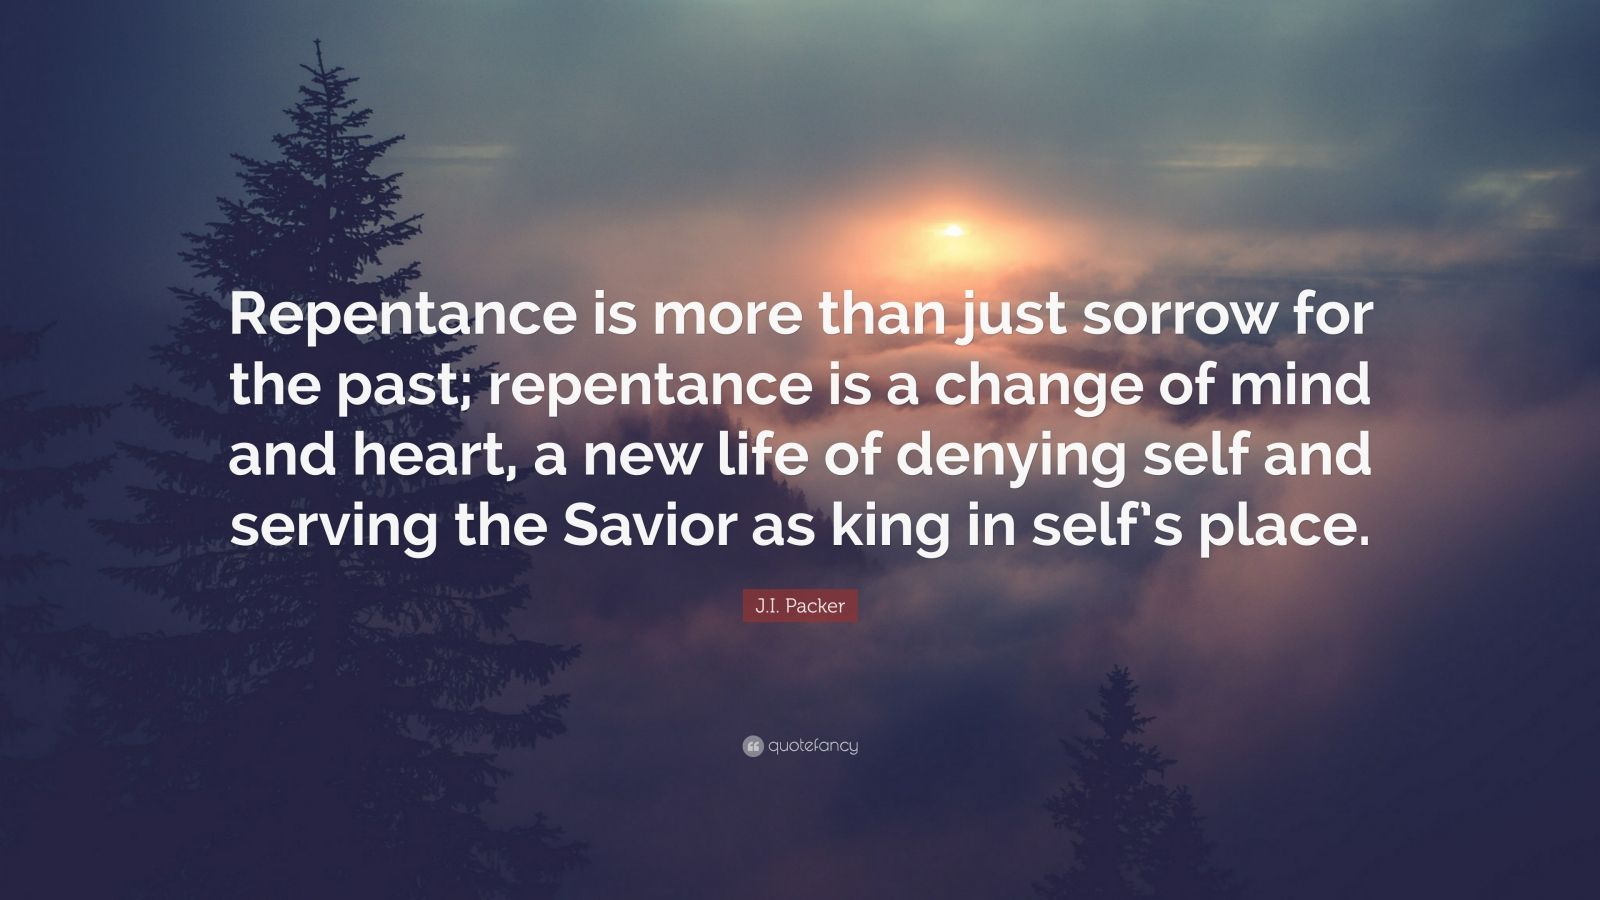 """J.I. Packer Quote: """"Repentance is more than just sorrow for the past; repentance is a change of mind and heart, a new life of denying self and serving the Savior as king in self's place."""""""